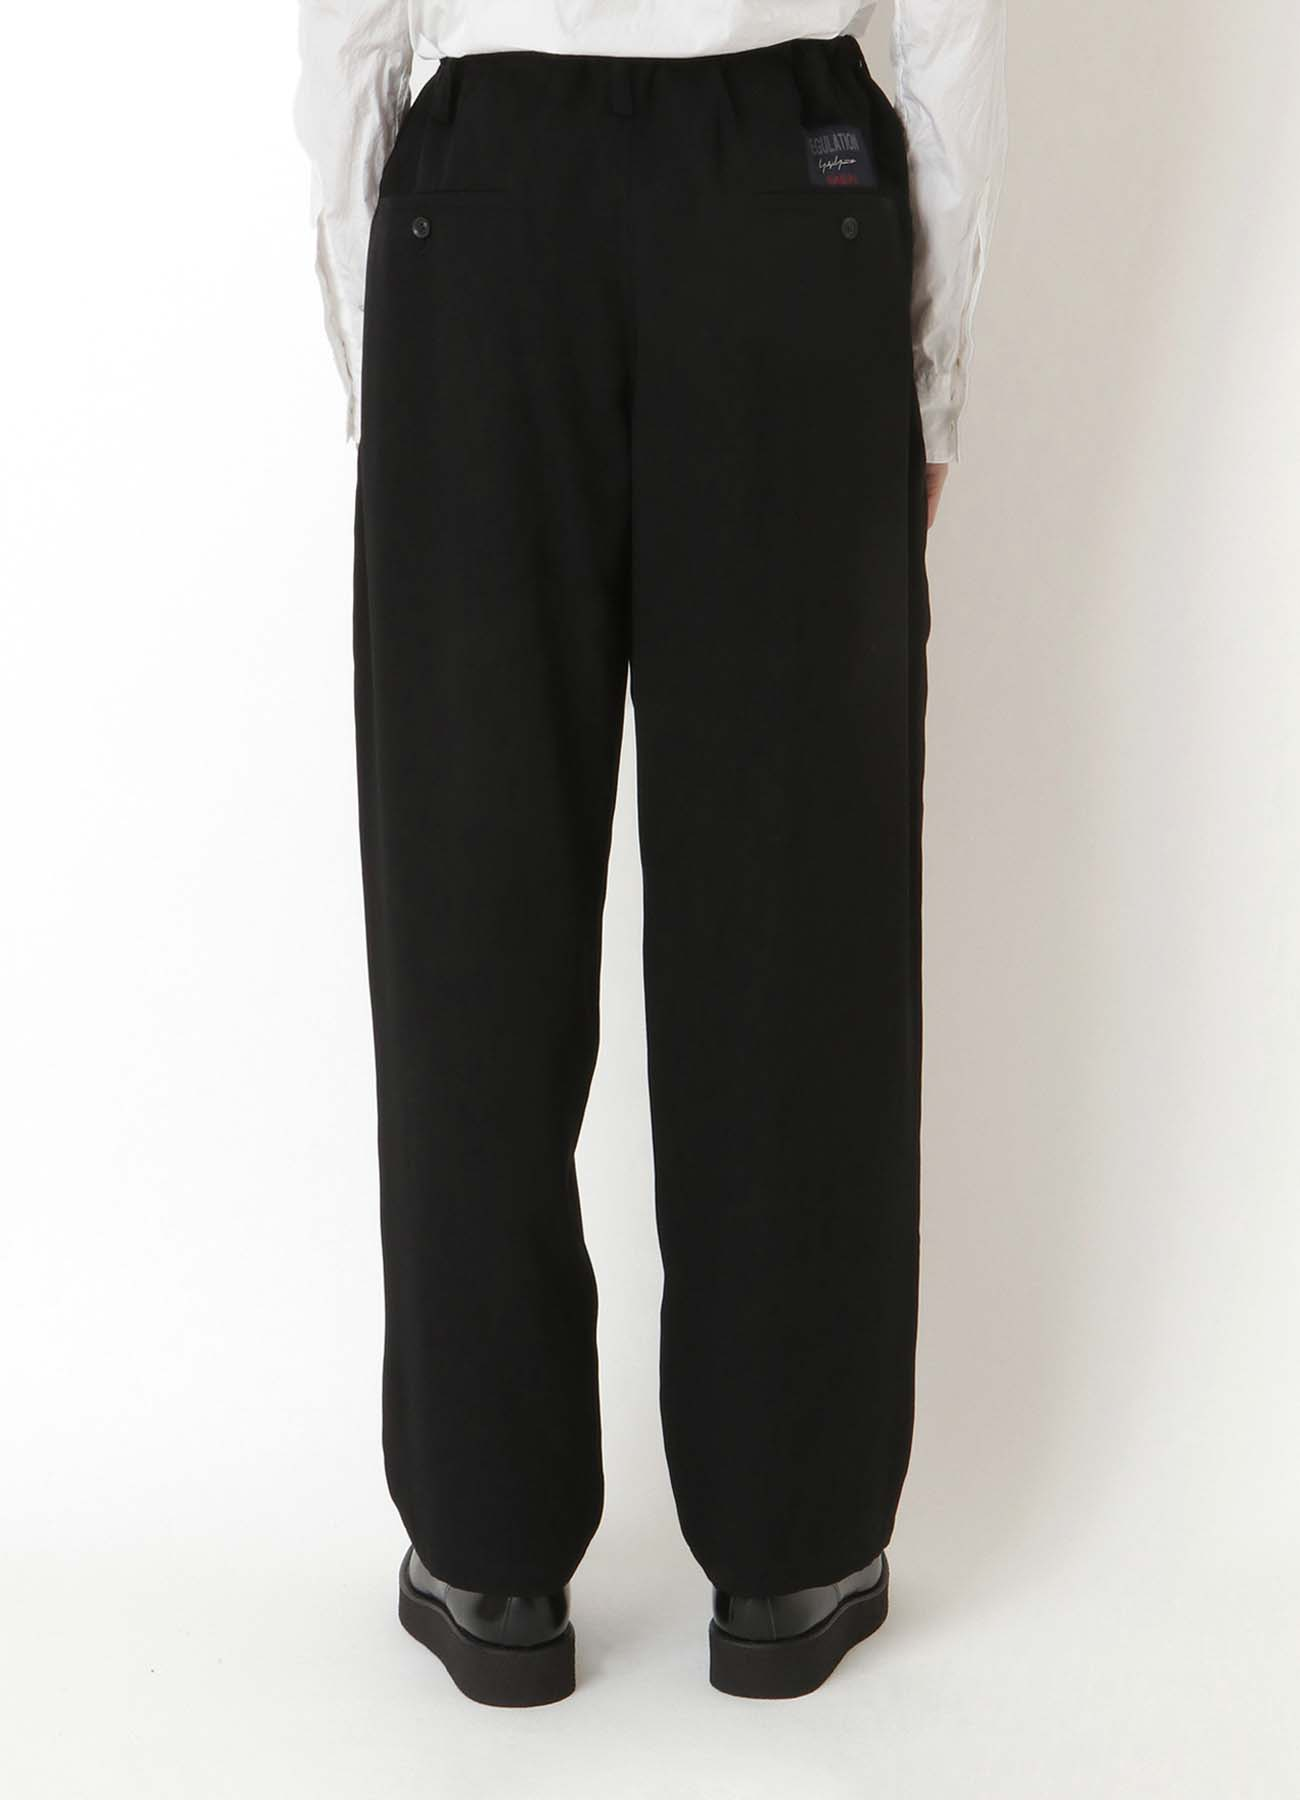 REGULATION TENCEL BURBERRY STRING PANTS